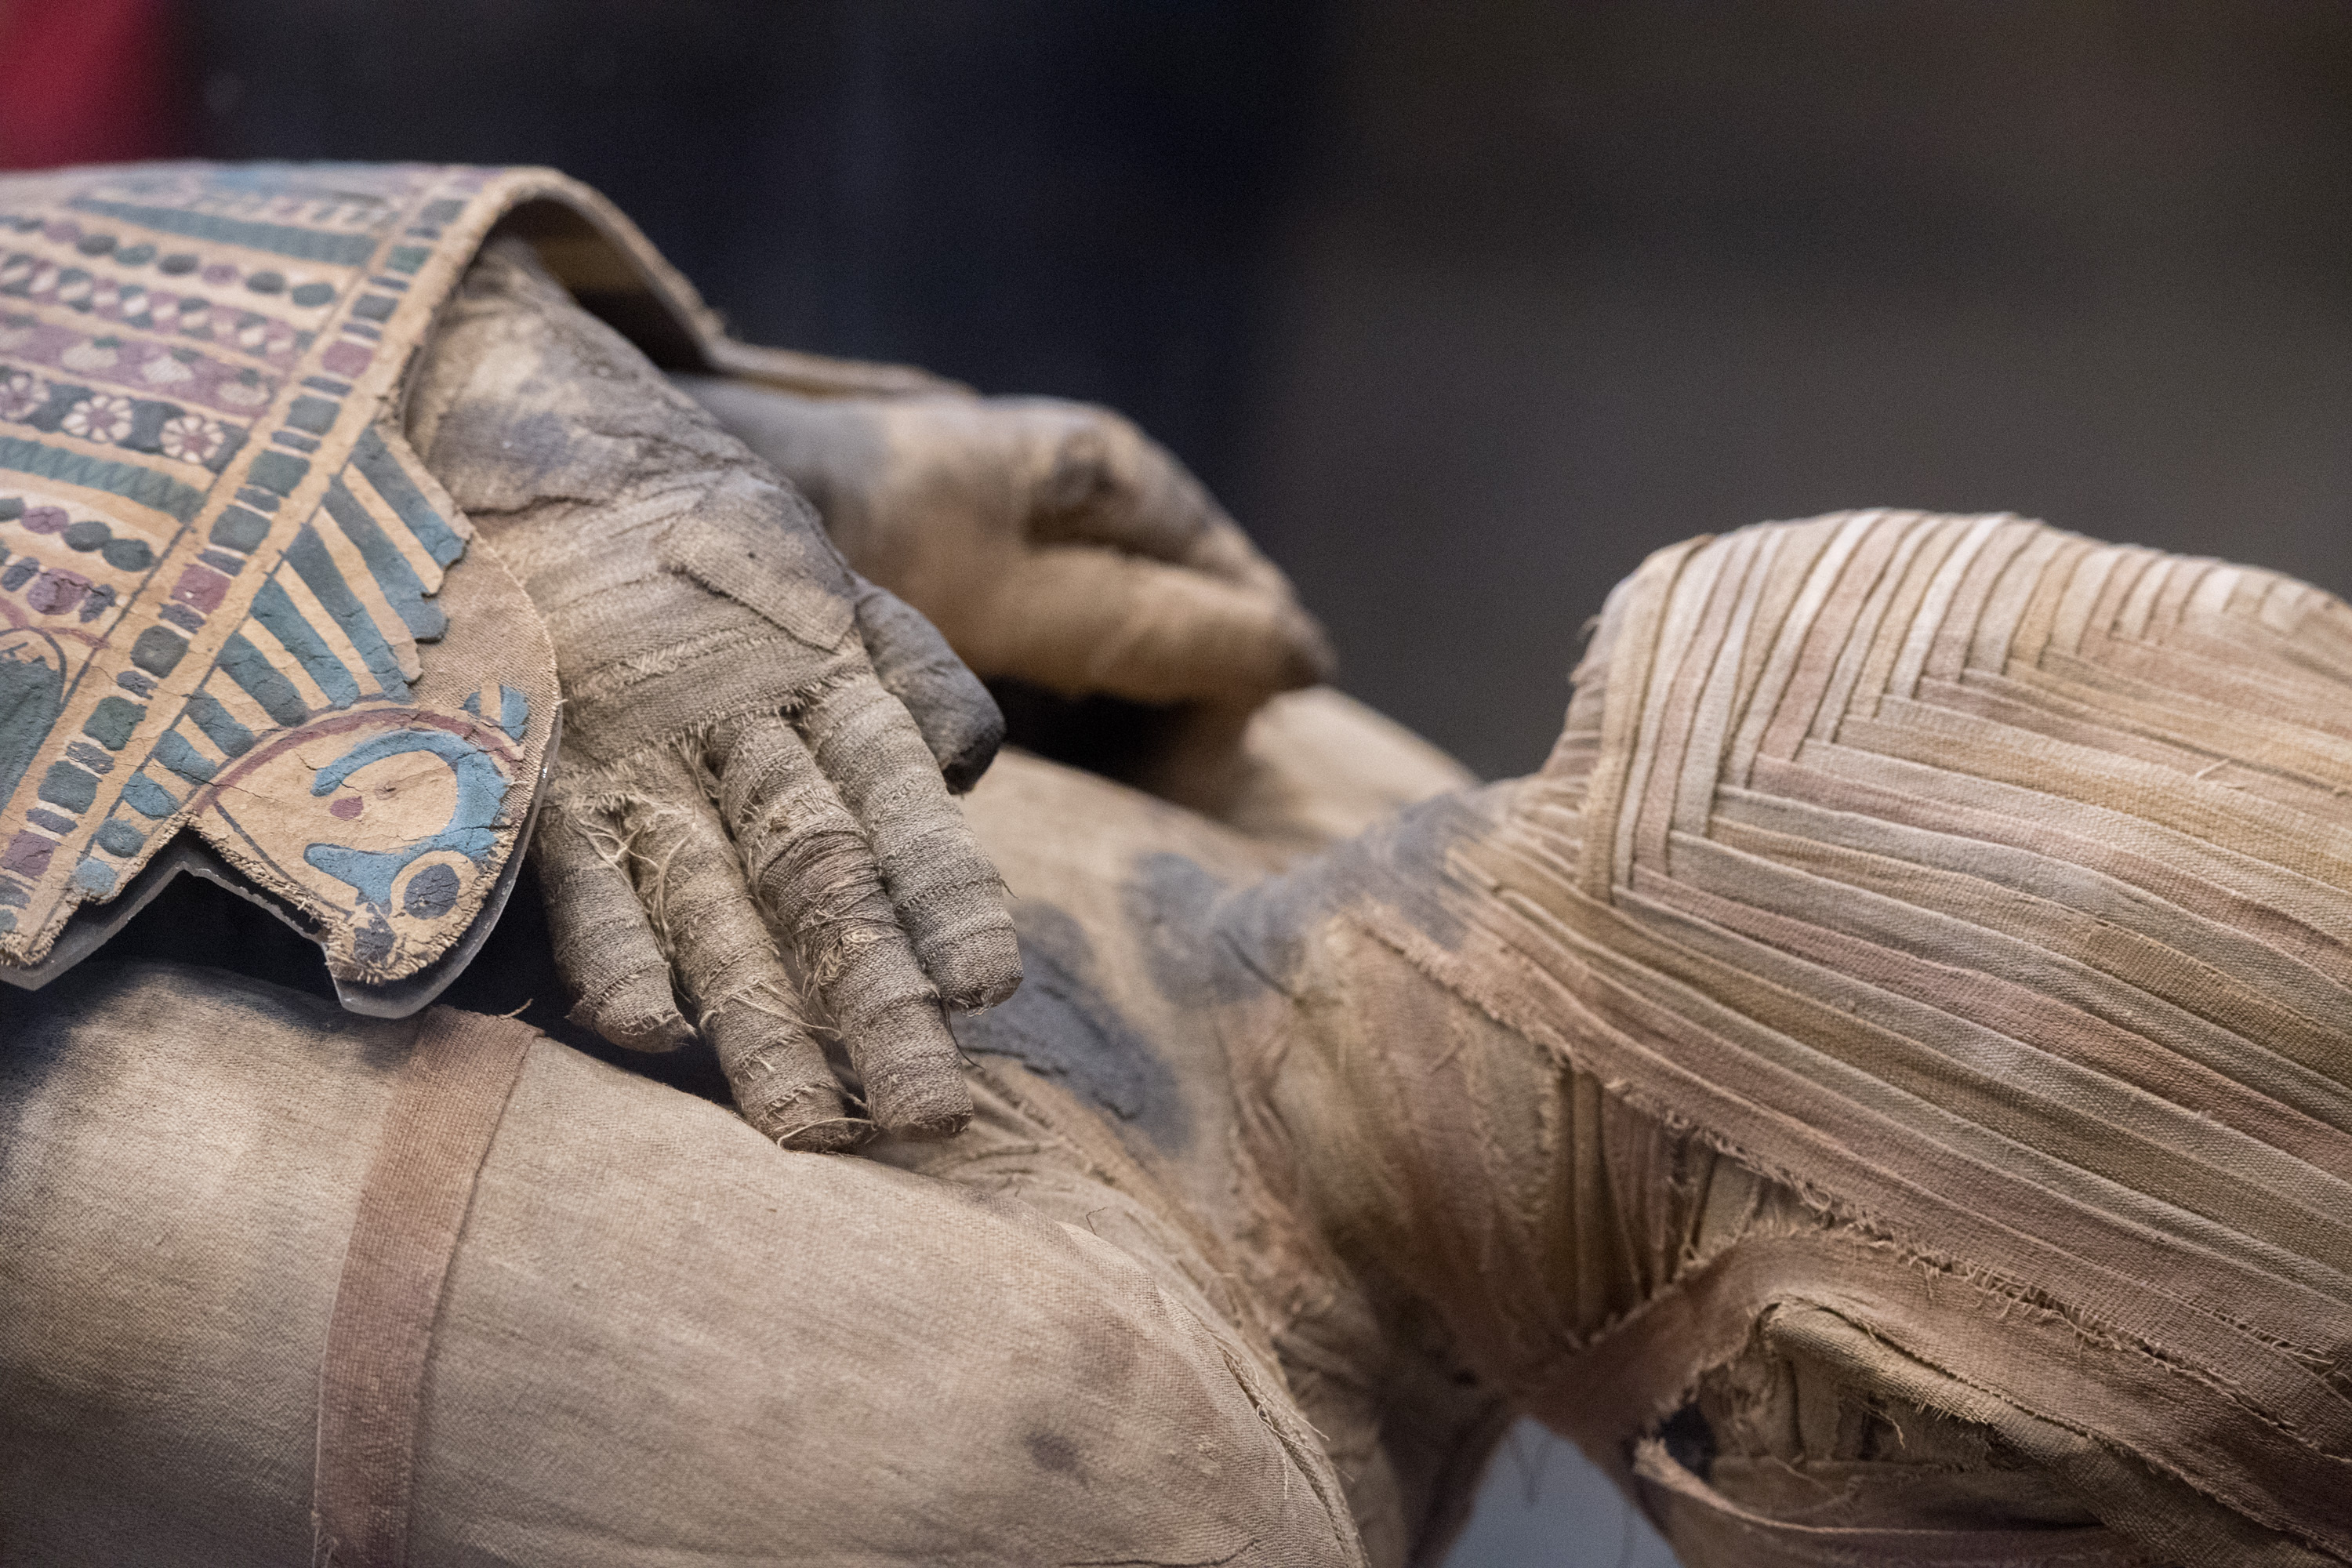 Ancient Egyptian sarcophagus to be opened on live TV this weekend